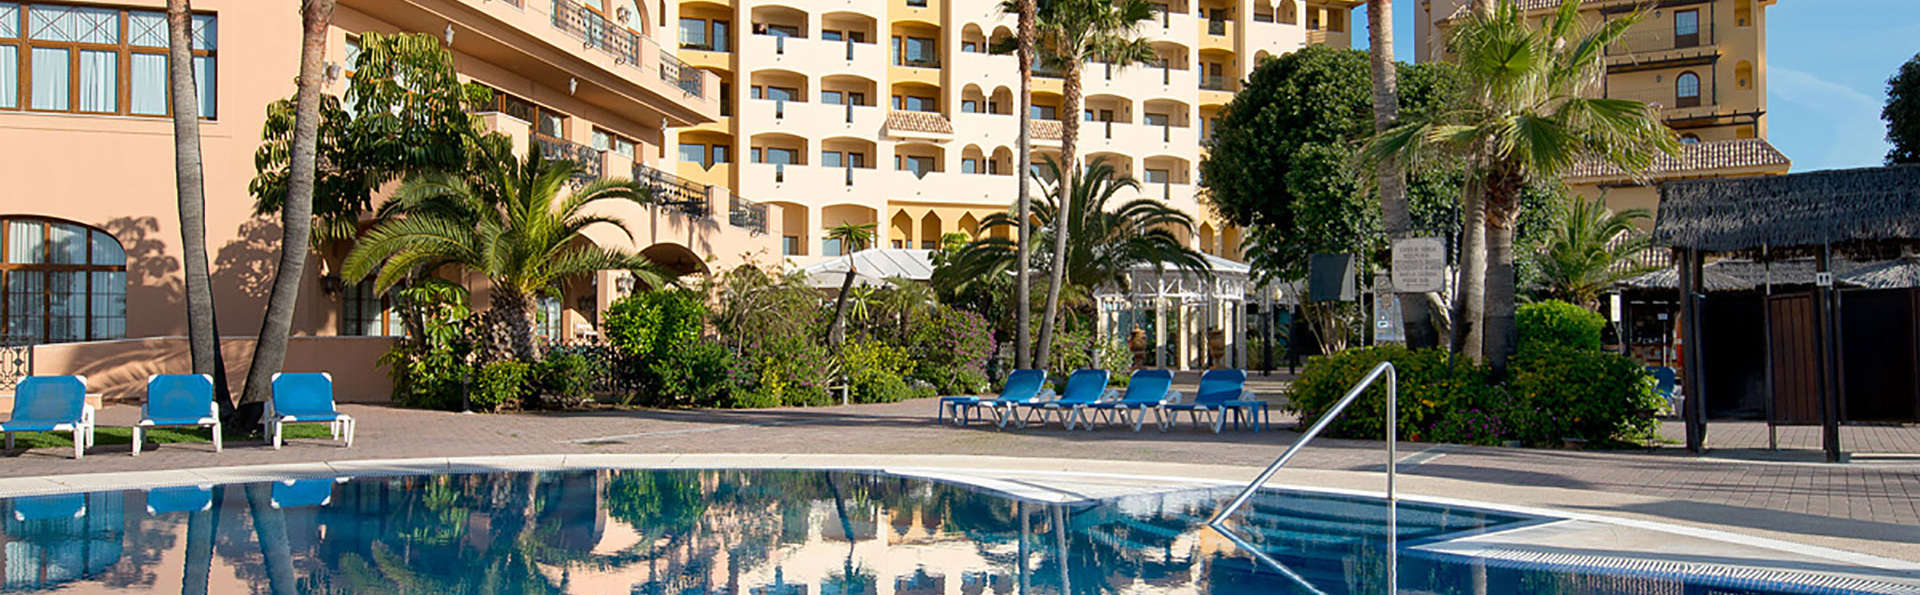 Hotel IPV Palace Spa - Edit_Front2.jpg